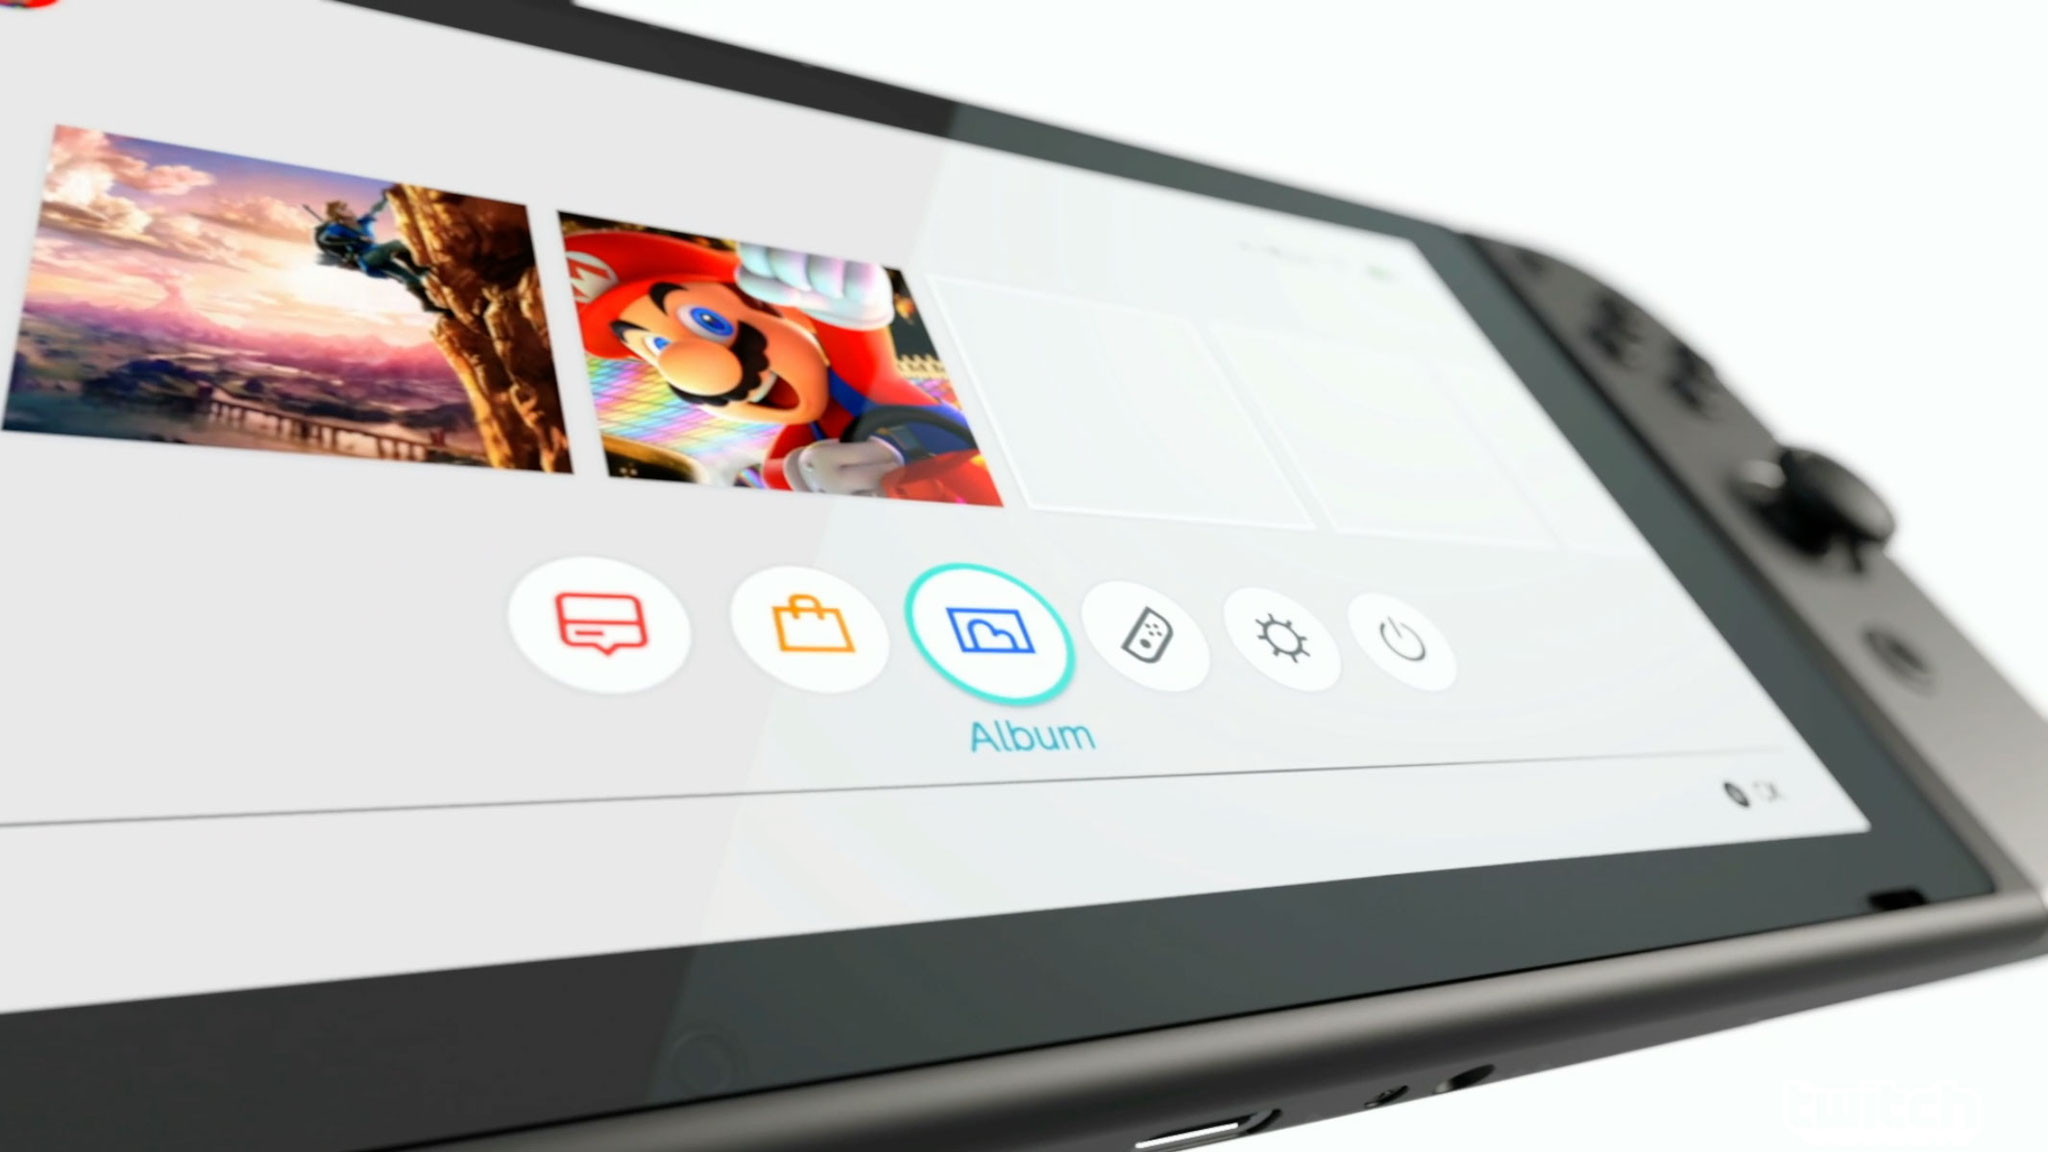 Also doch: Das Switch-Handheld kommt mit Multi-Touch-Screen